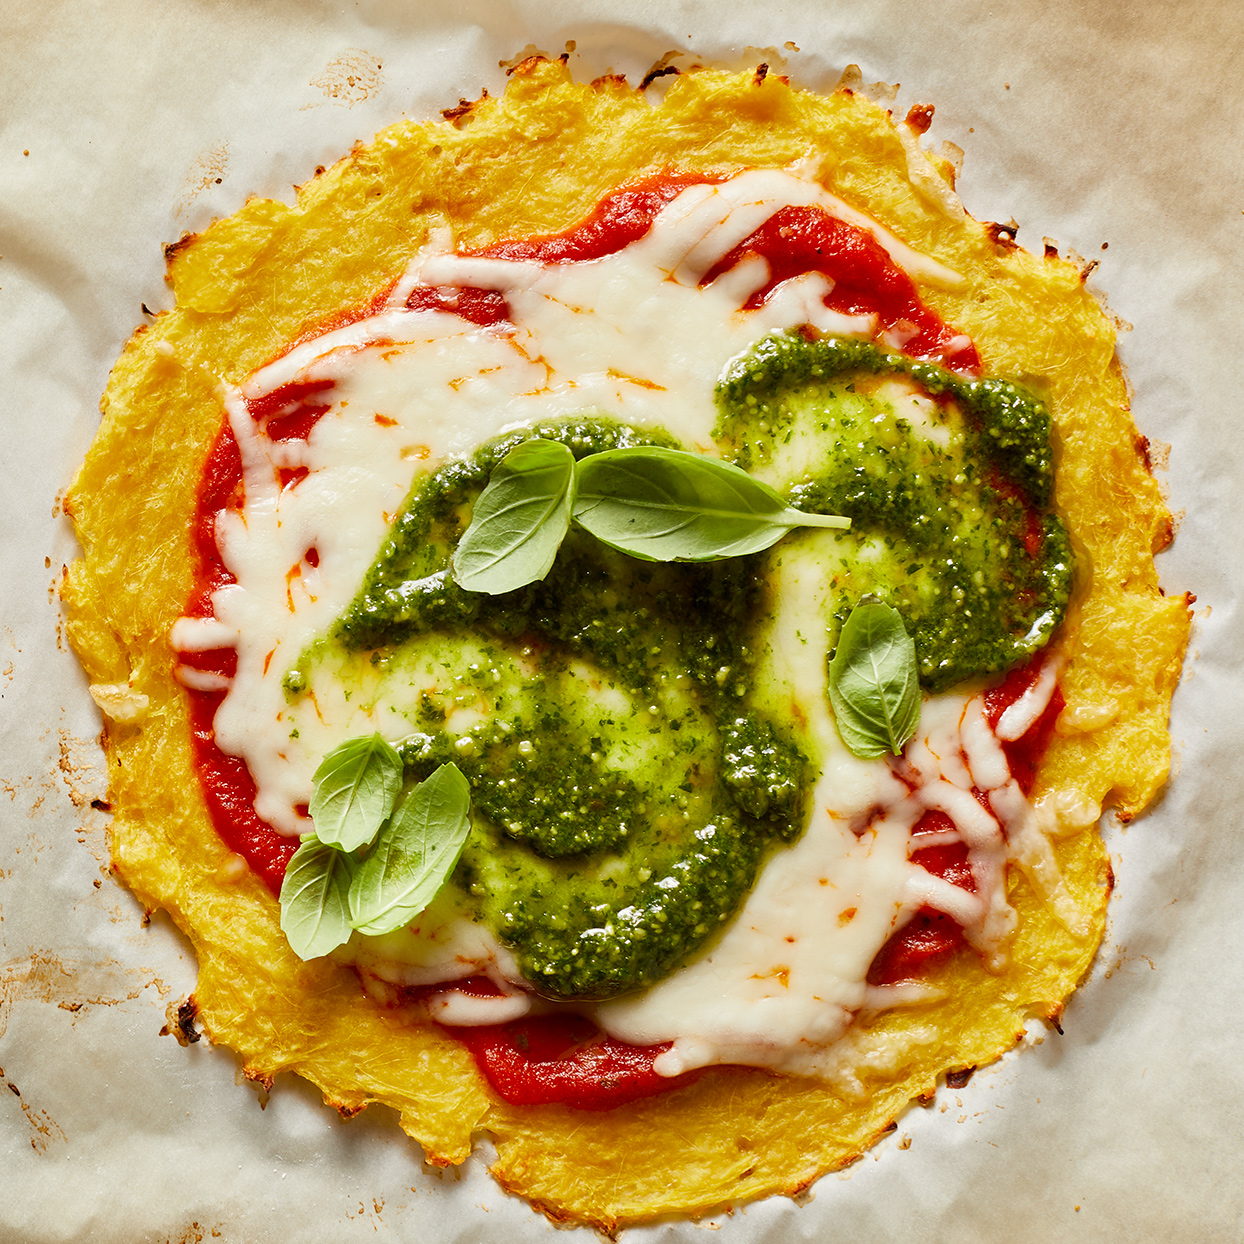 Pesto Pizza with Spaghetti Squash Crust Robin Bashinsky